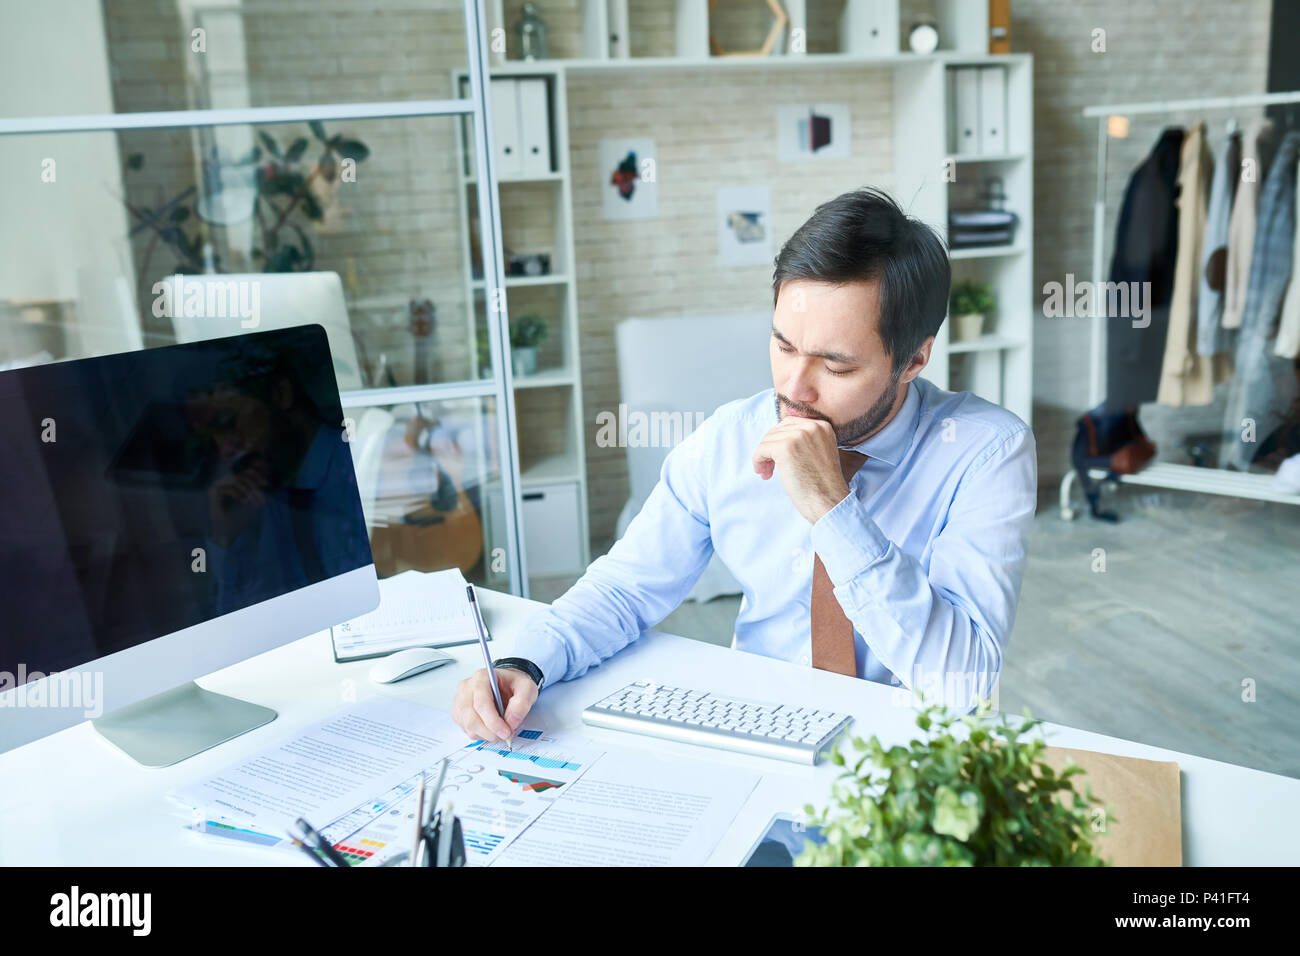 Thoughtful man working in office Photo Stock